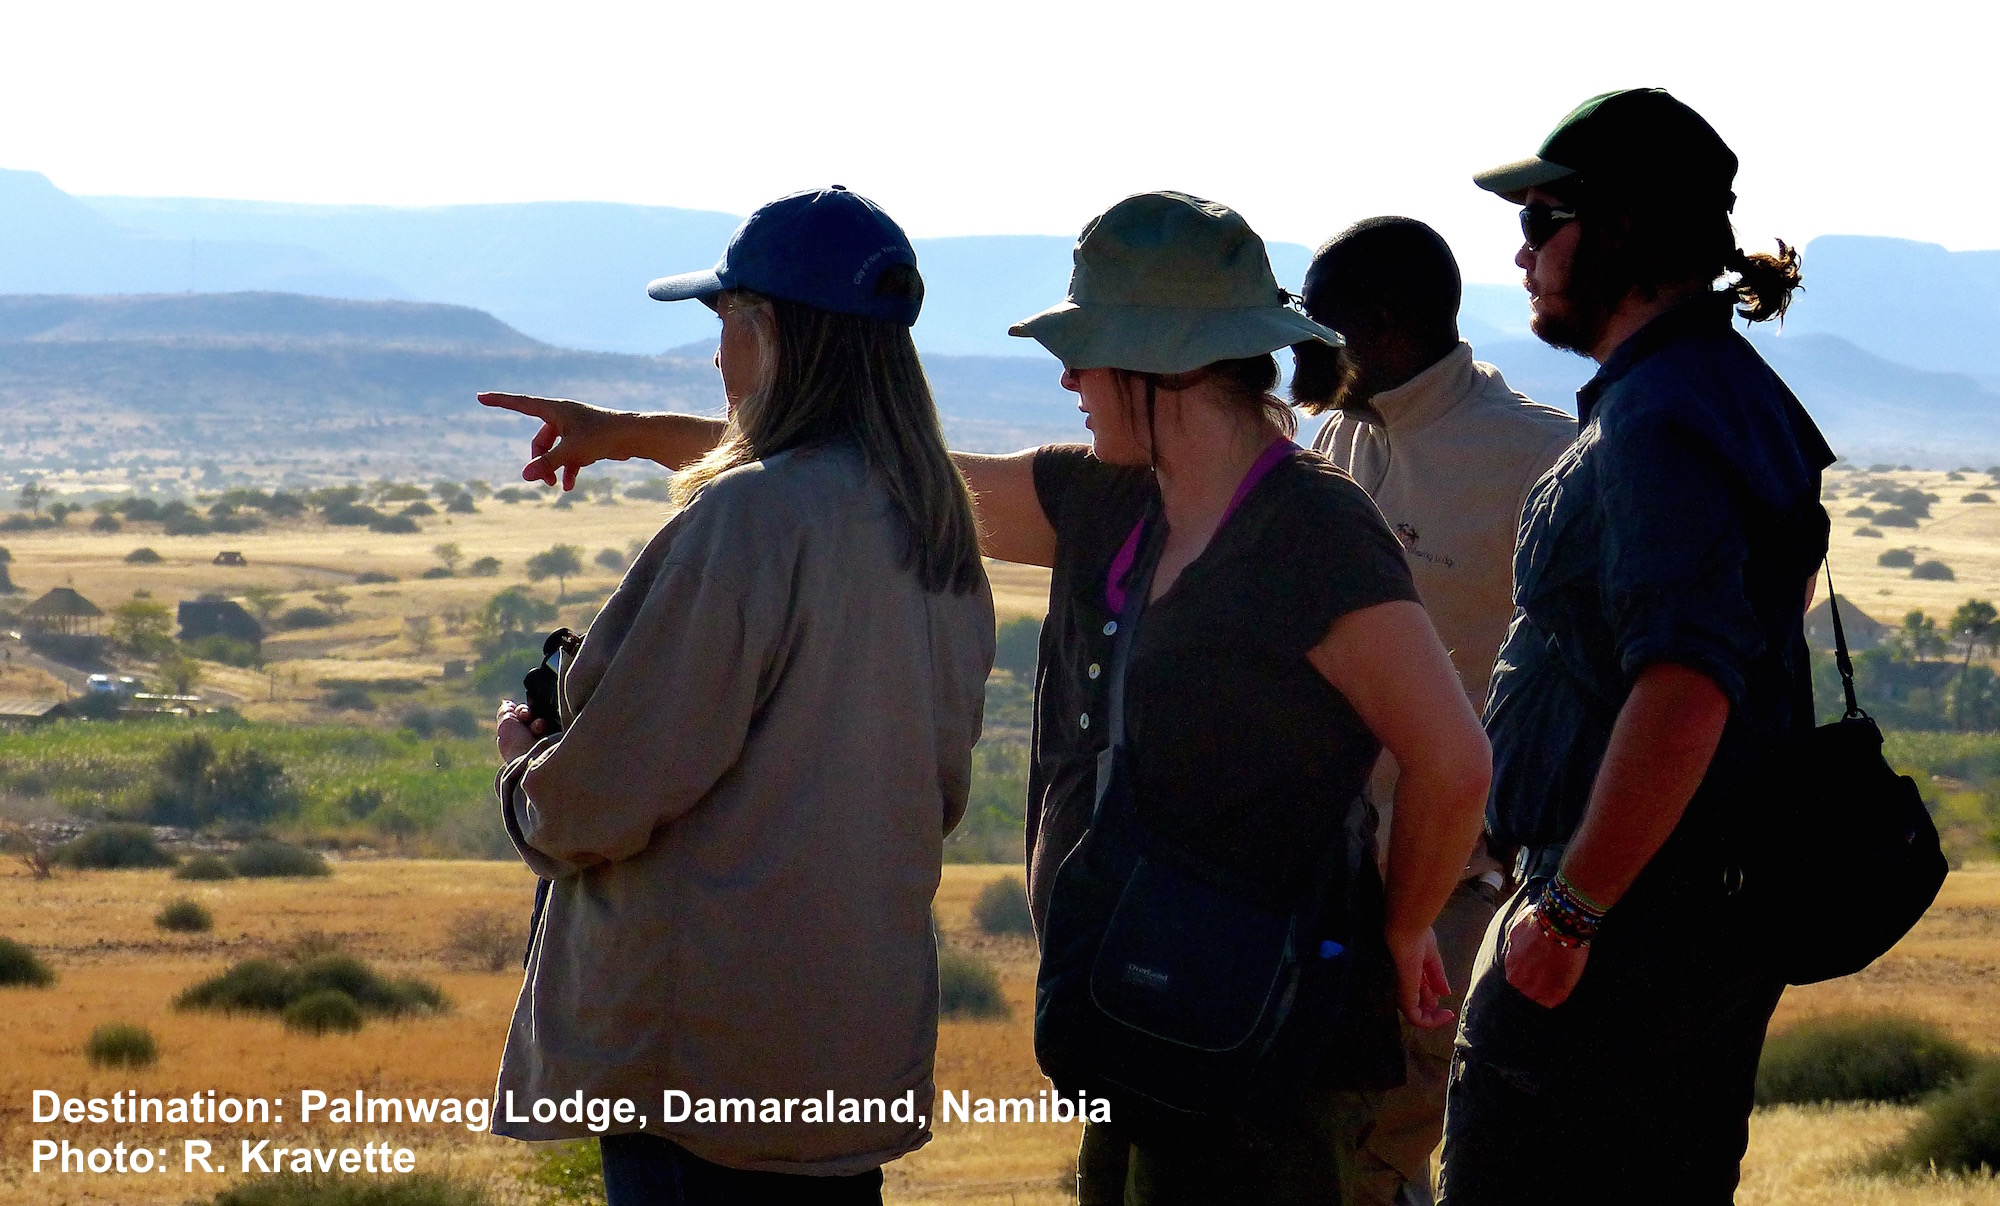 Gina points out some wildlife while Connie and Marc Cronje, our safari field guide and Erwin, the Palmwag Lodge guide watch. Image: ©R. Kravette